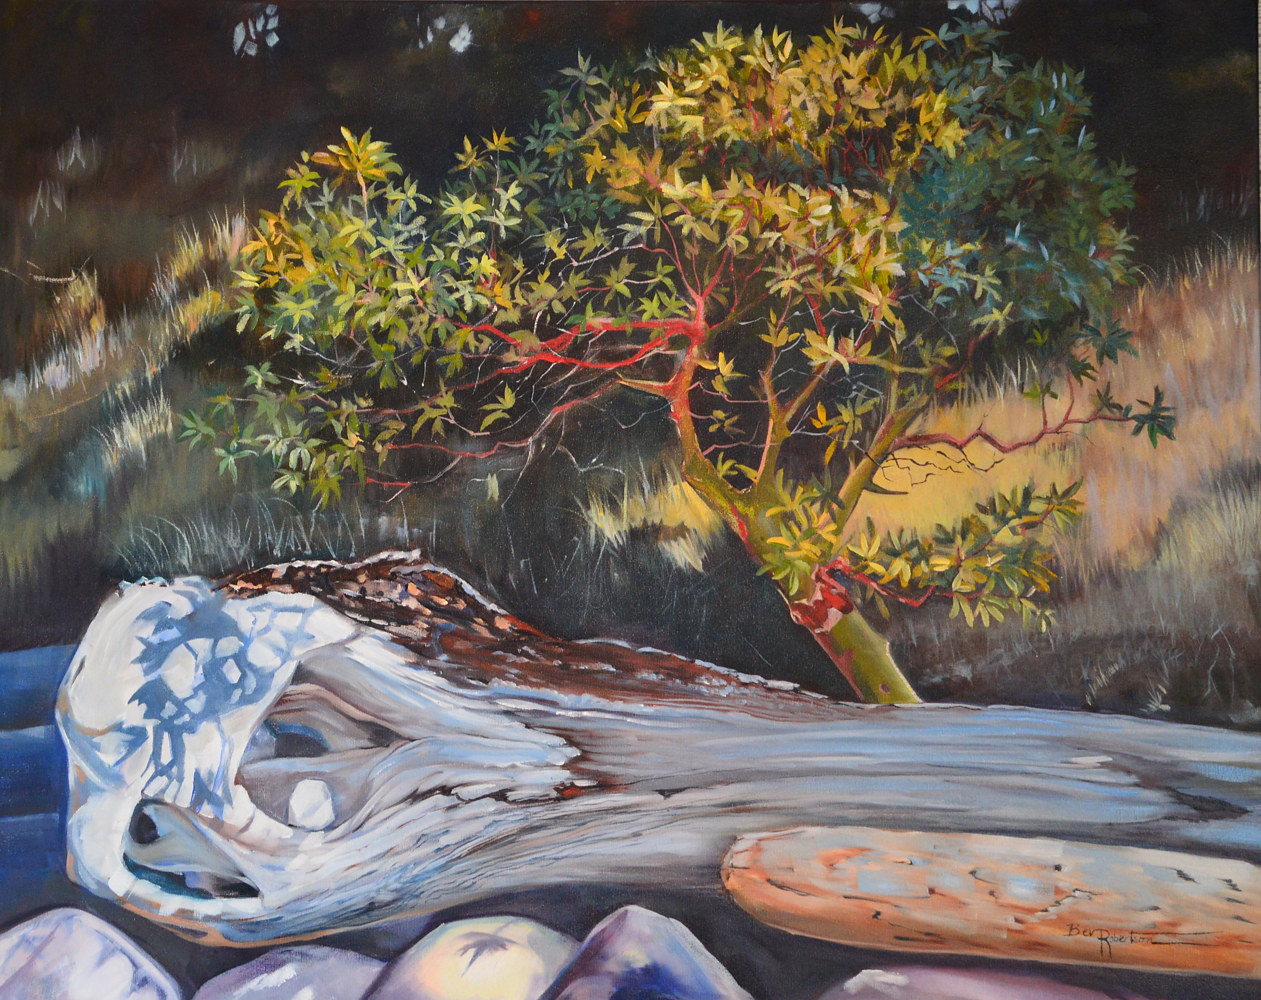 Oil painting Bev Robertson-oil on canvas-Little Madrona 201813 by Bev Robertson